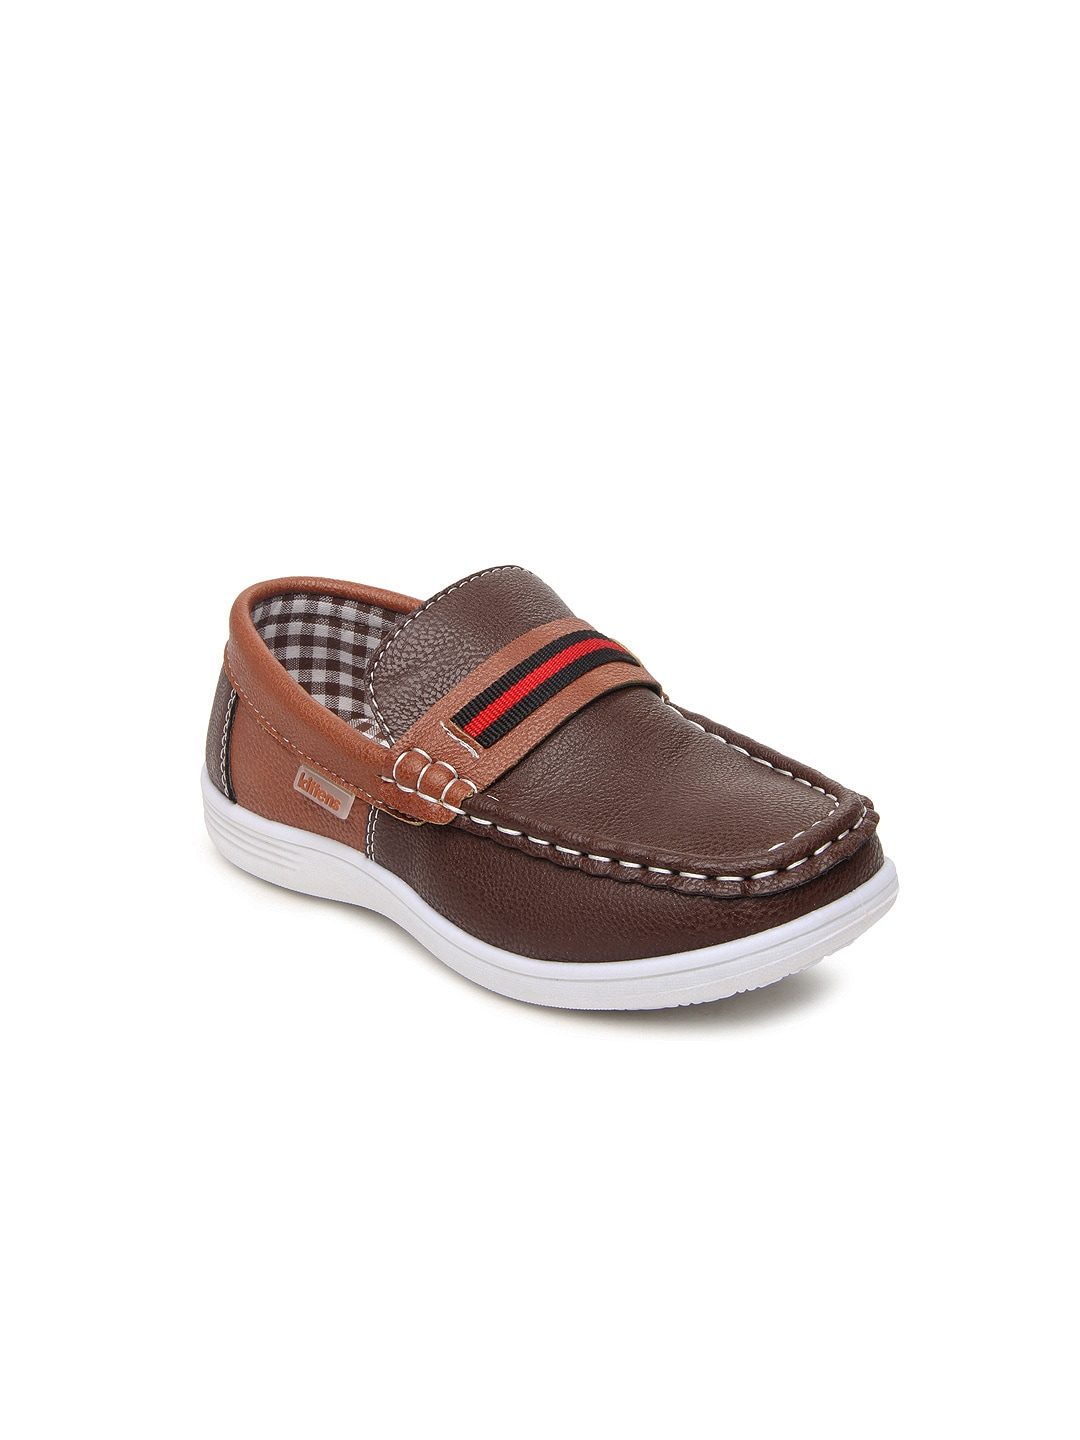 Discover the latest styles of boys' dress loafers from your favorite brands at Famous Footwear! Find the right fit today!